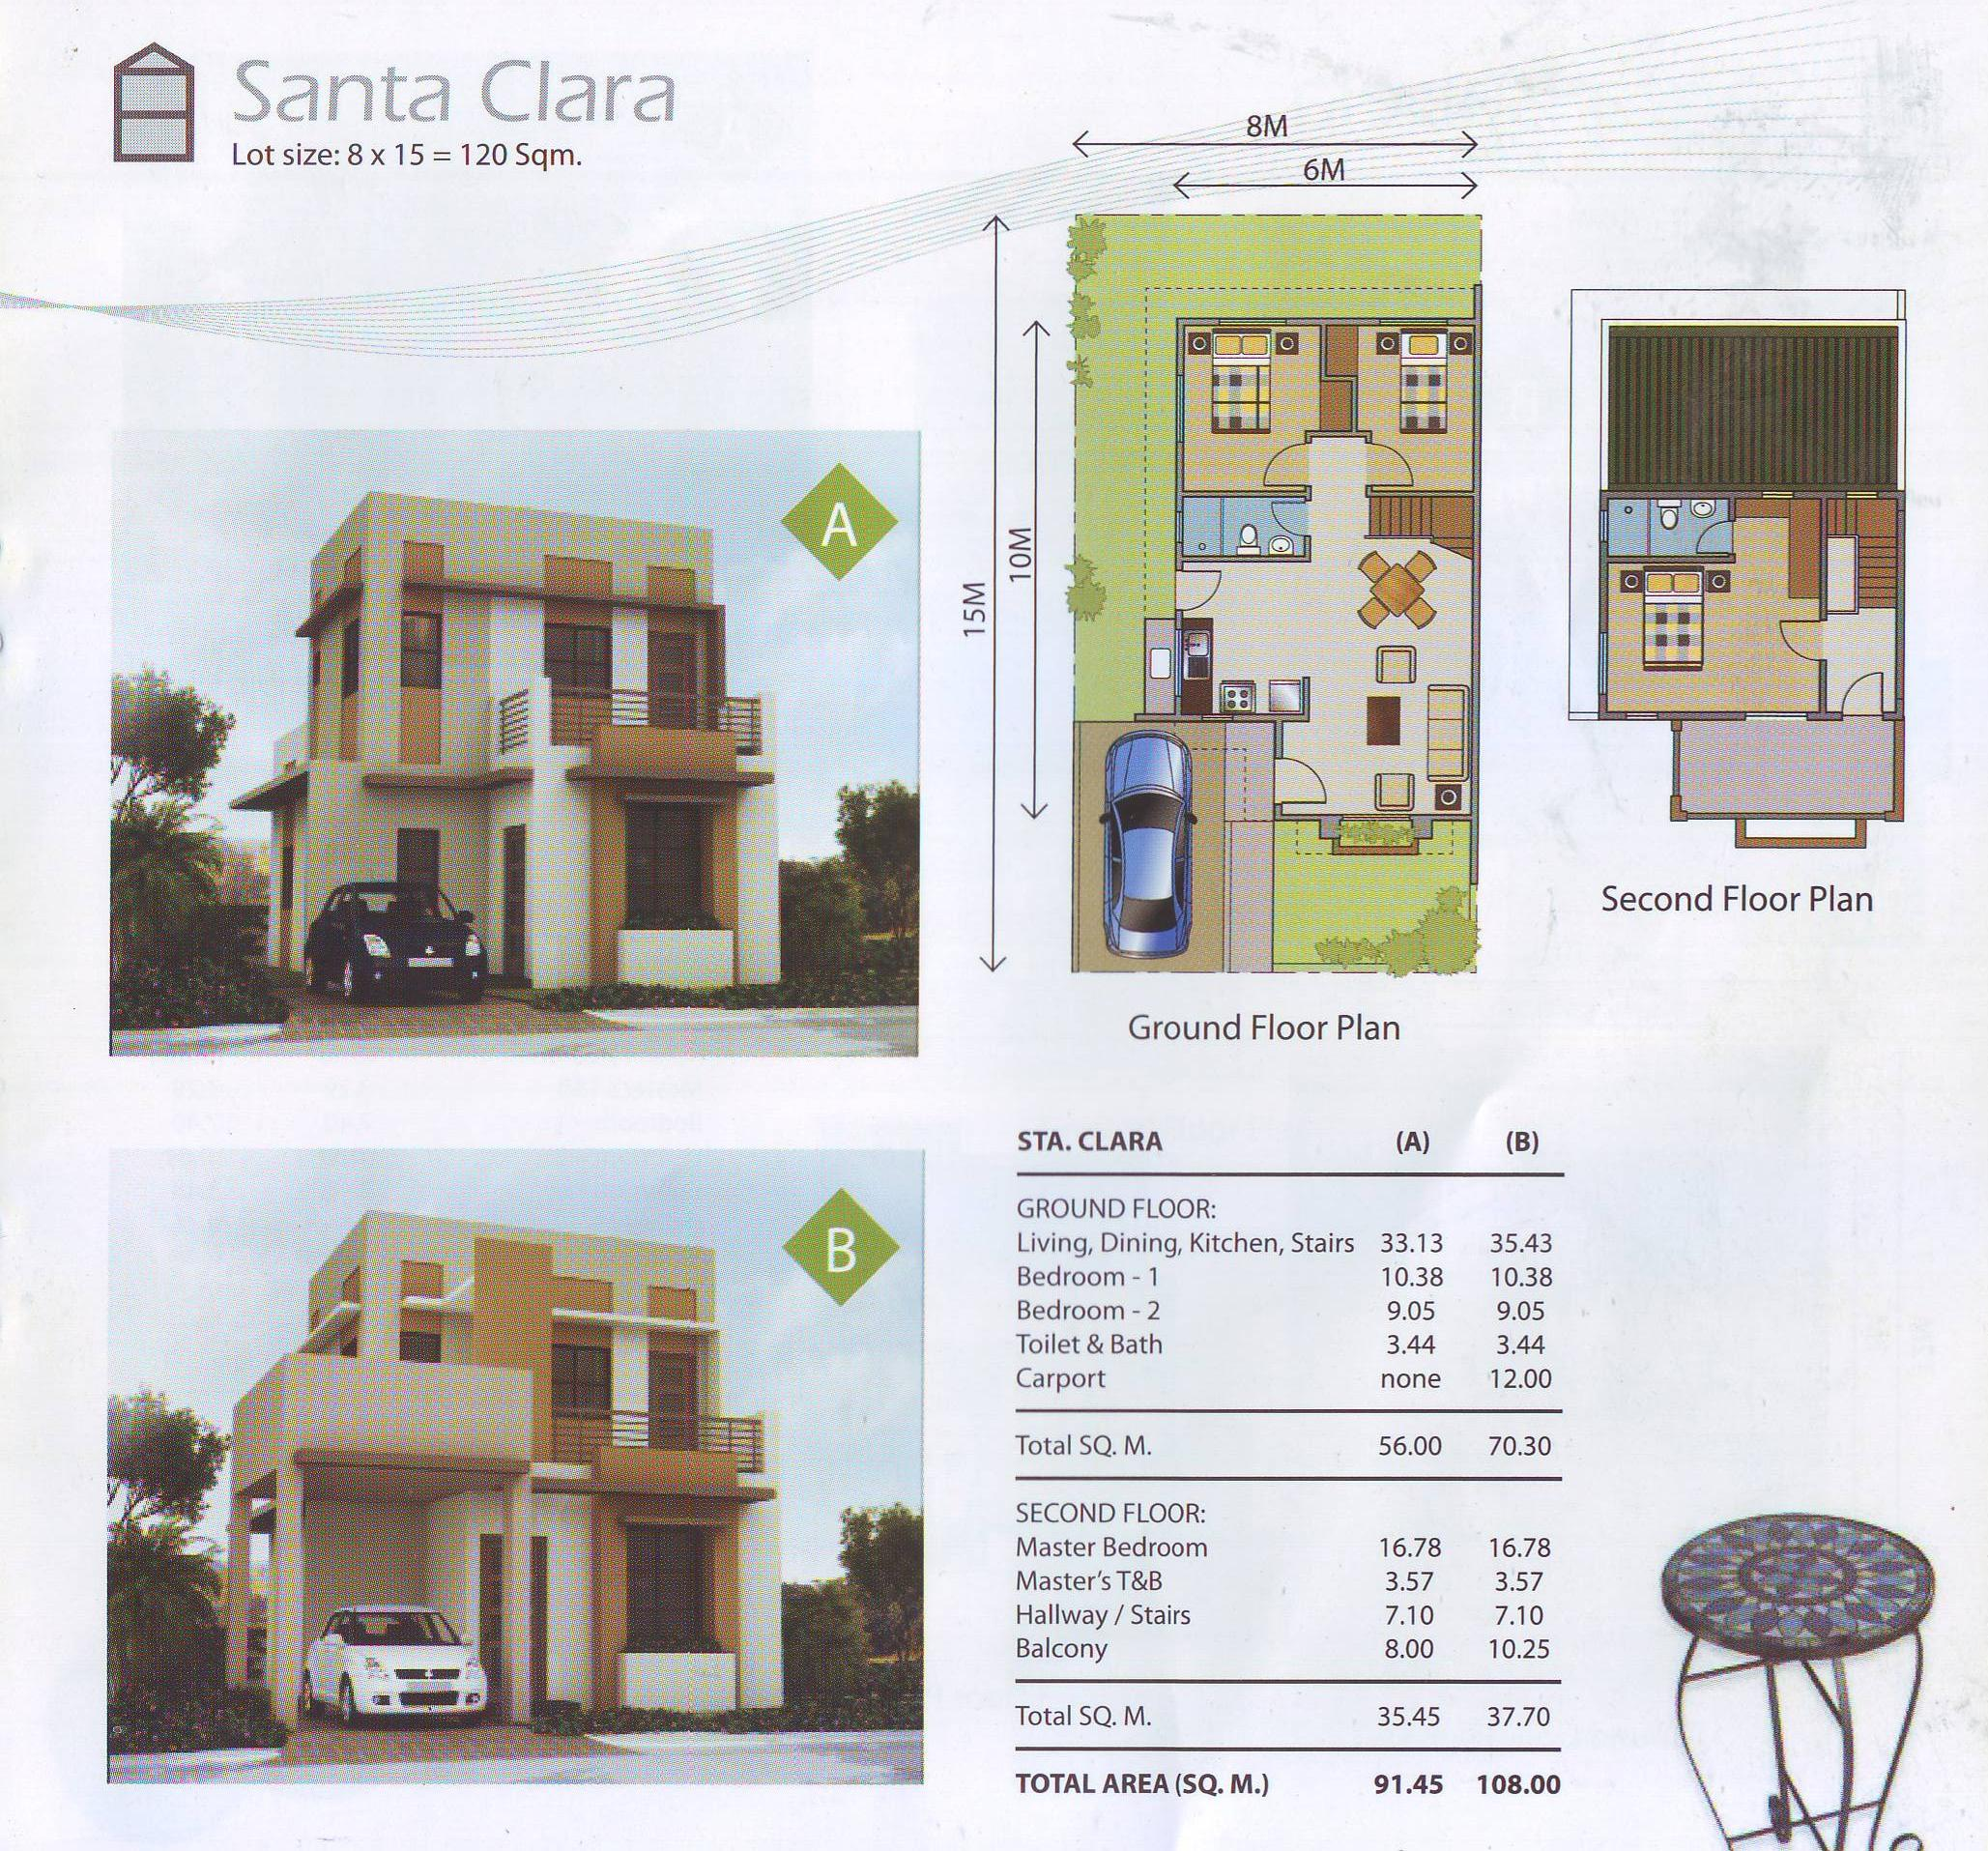 FOR SALE: Lot / Land / Farm Batangas > Other areas 22